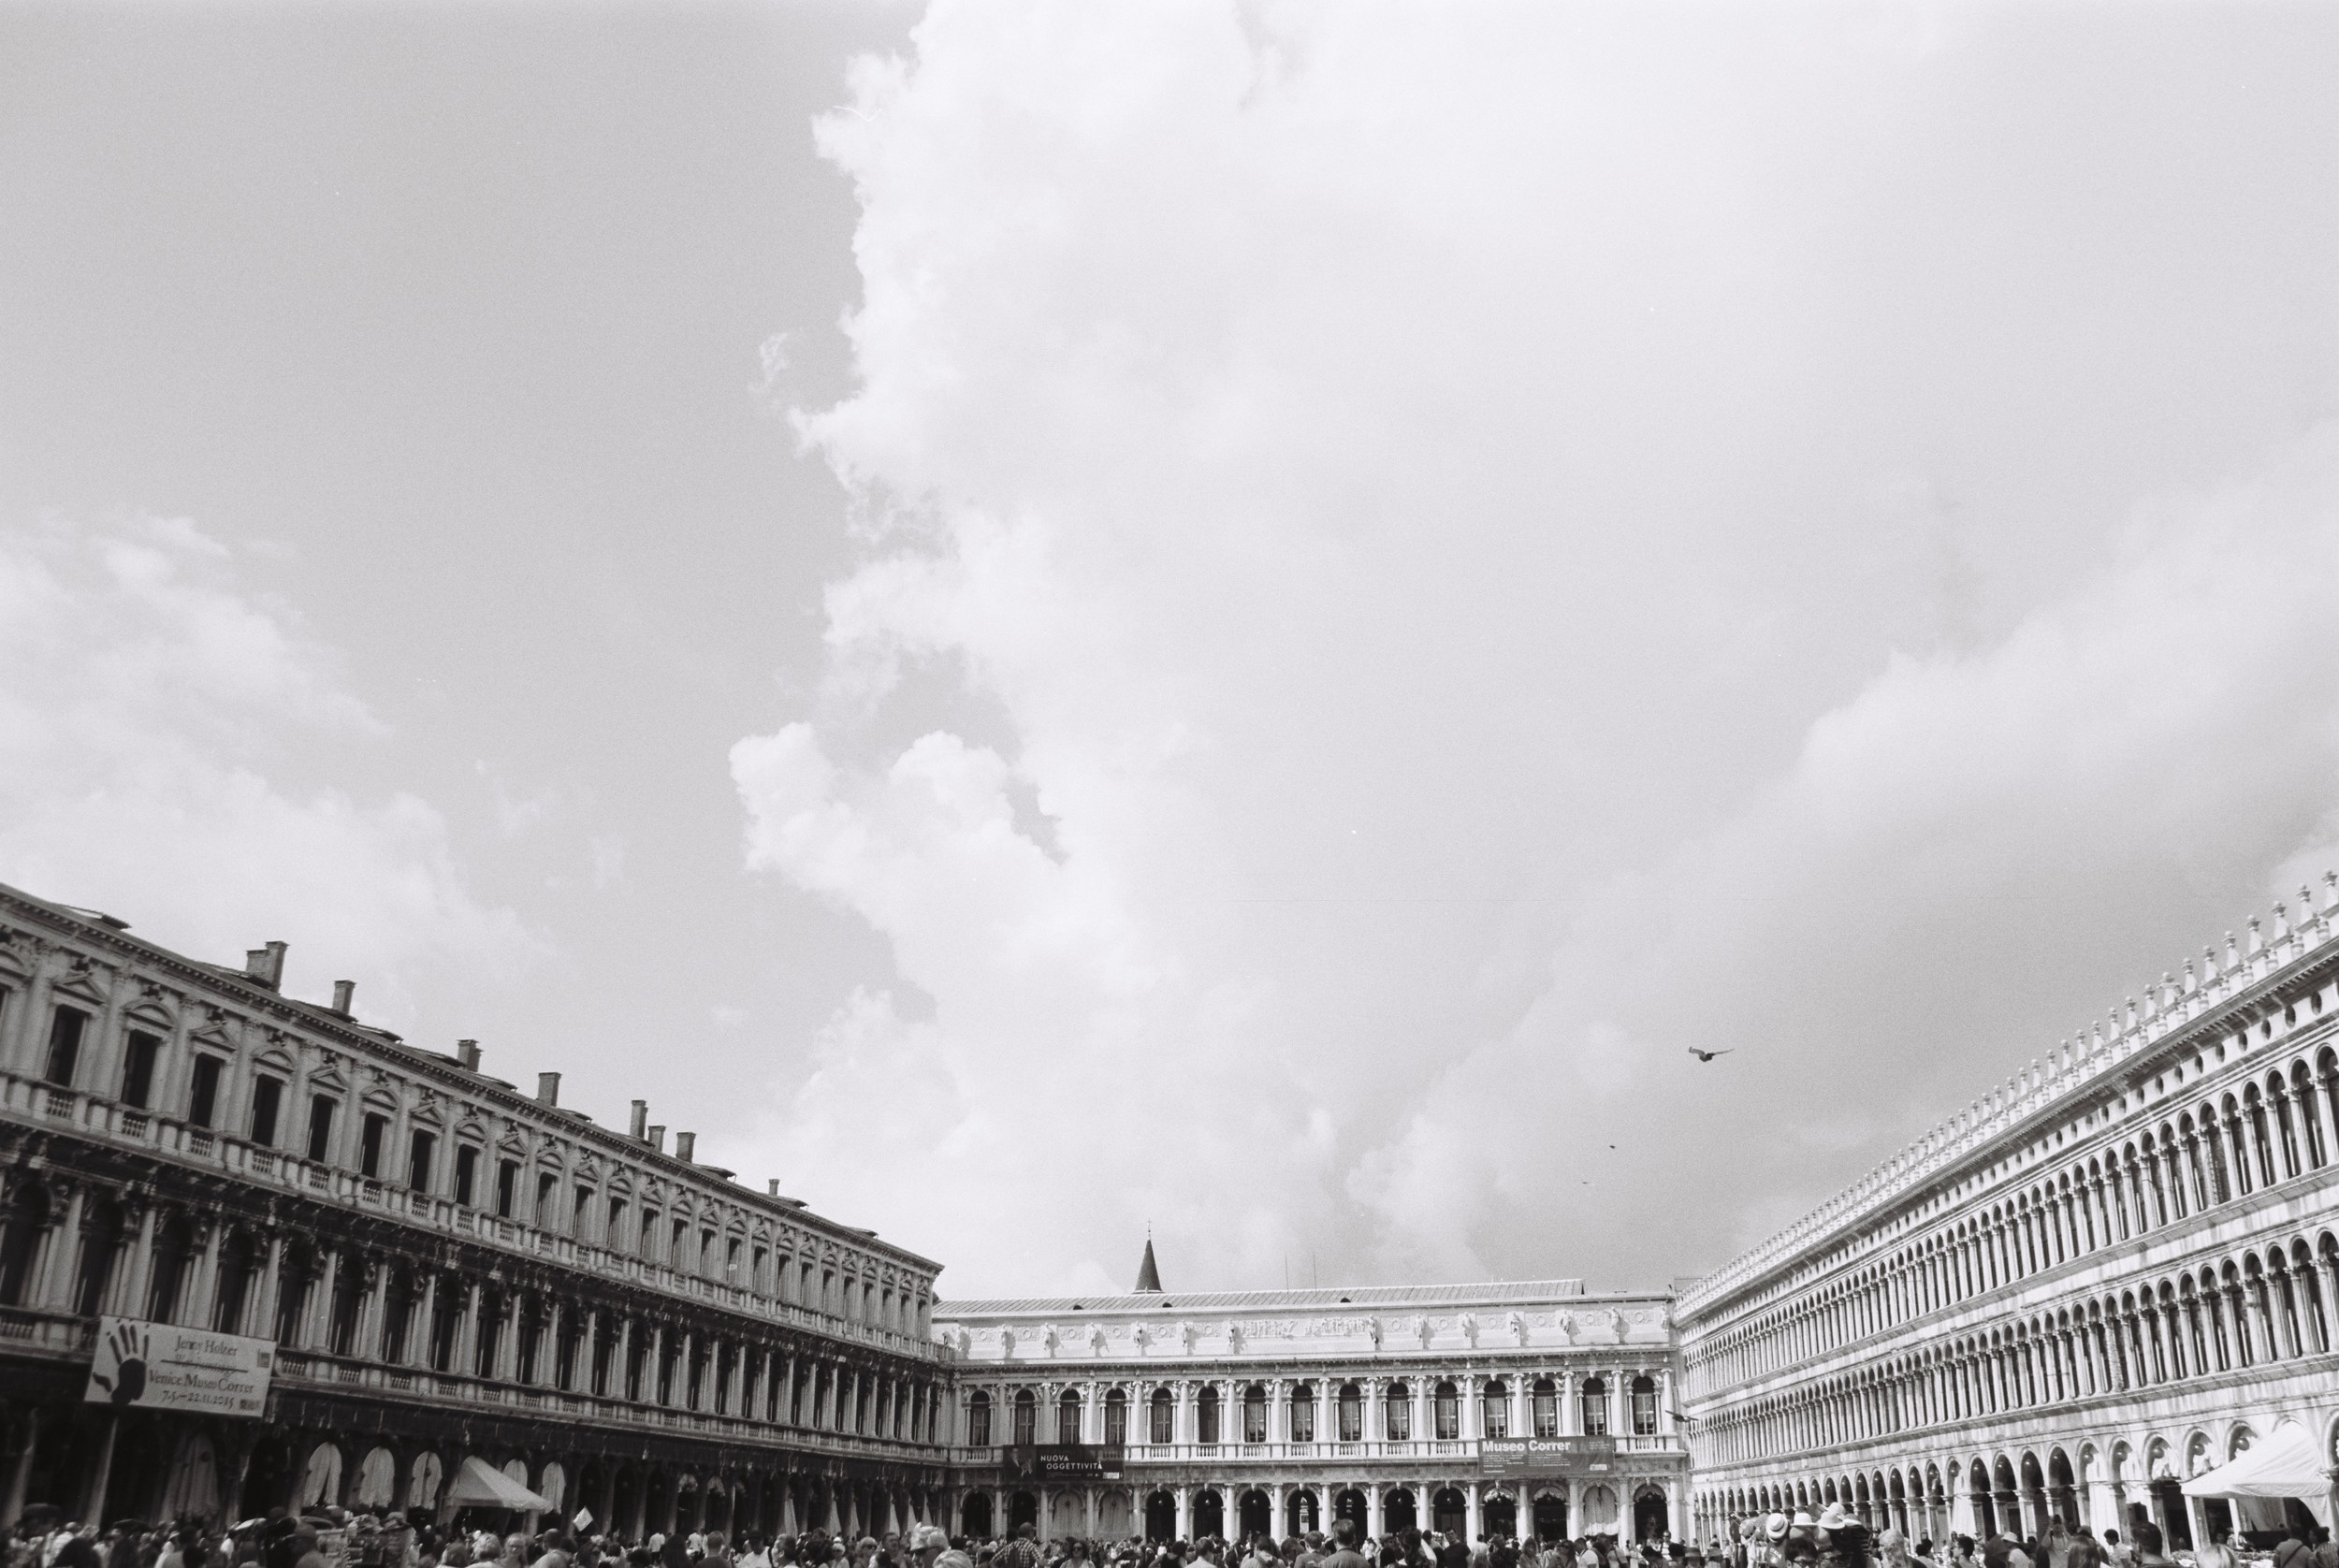 """St Mark's Square, which floods during the day. At around lunch the sea started making it's way through the drains. """"Opposite Drains"""". Odd."""